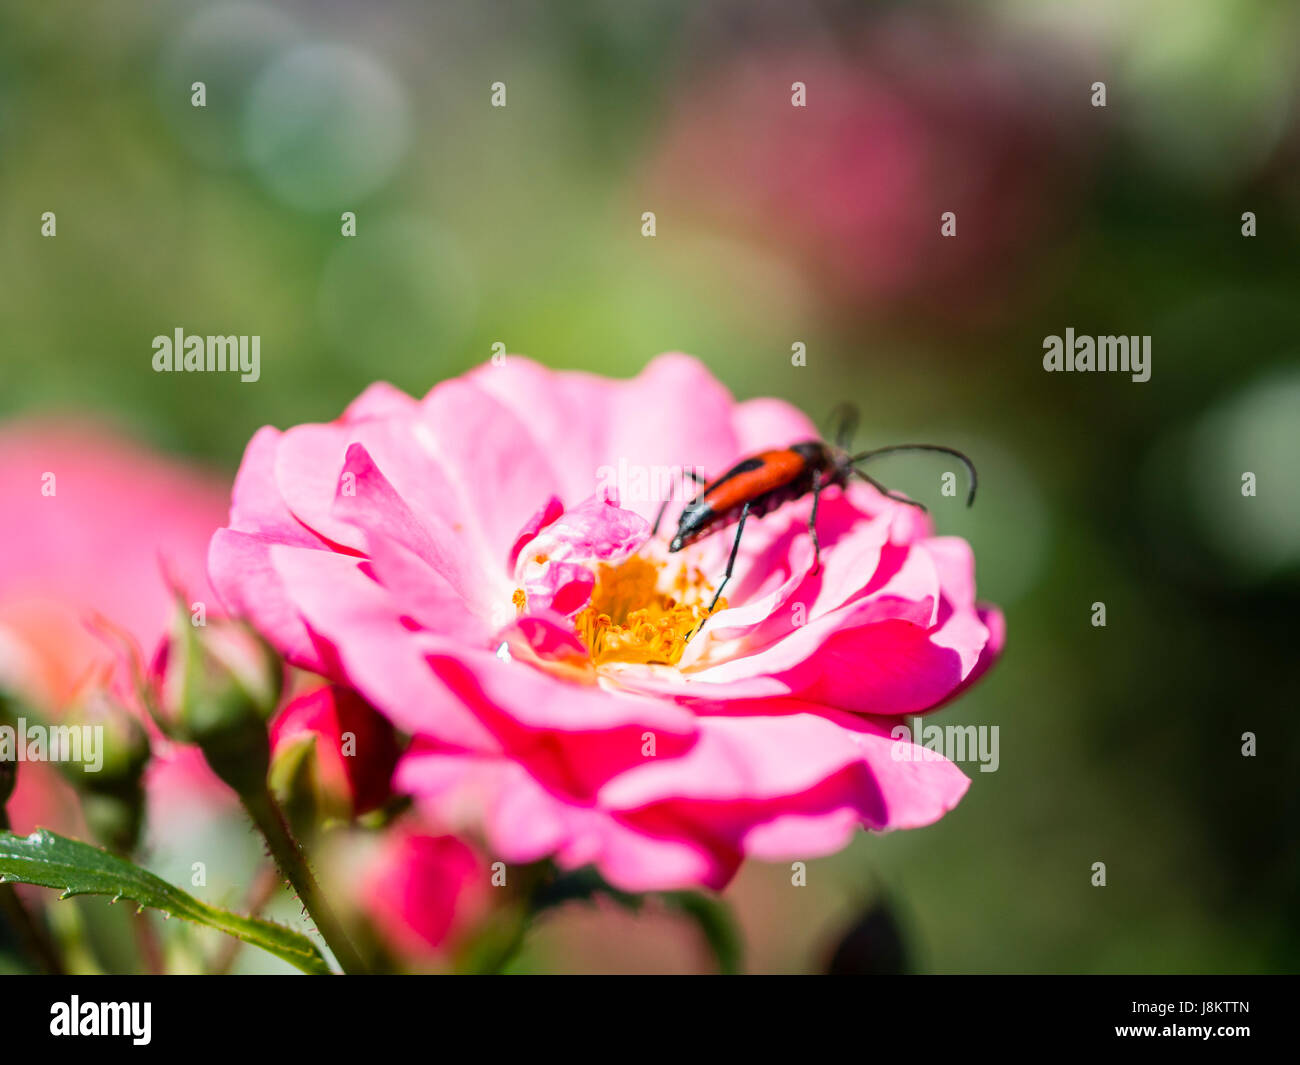 Longhorn beetle on pink fucsia flower Stock Photo